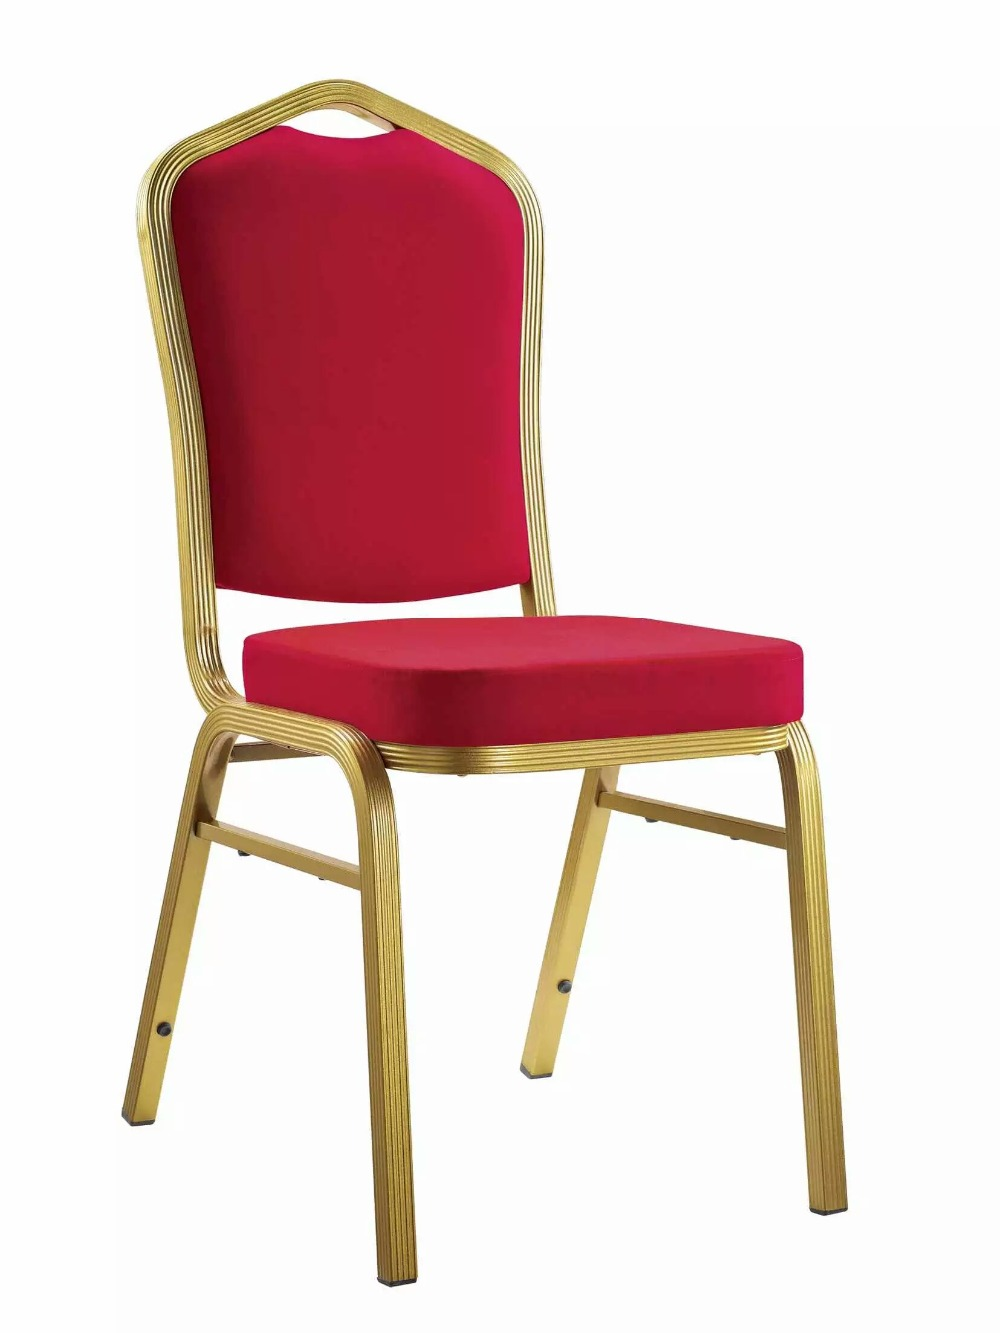 Us 17 0 Banquet Chair Stackable Chairs Restaurant Chairs Metal 5pc Carton In Hotel Chairs From Furniture On Aliexpress